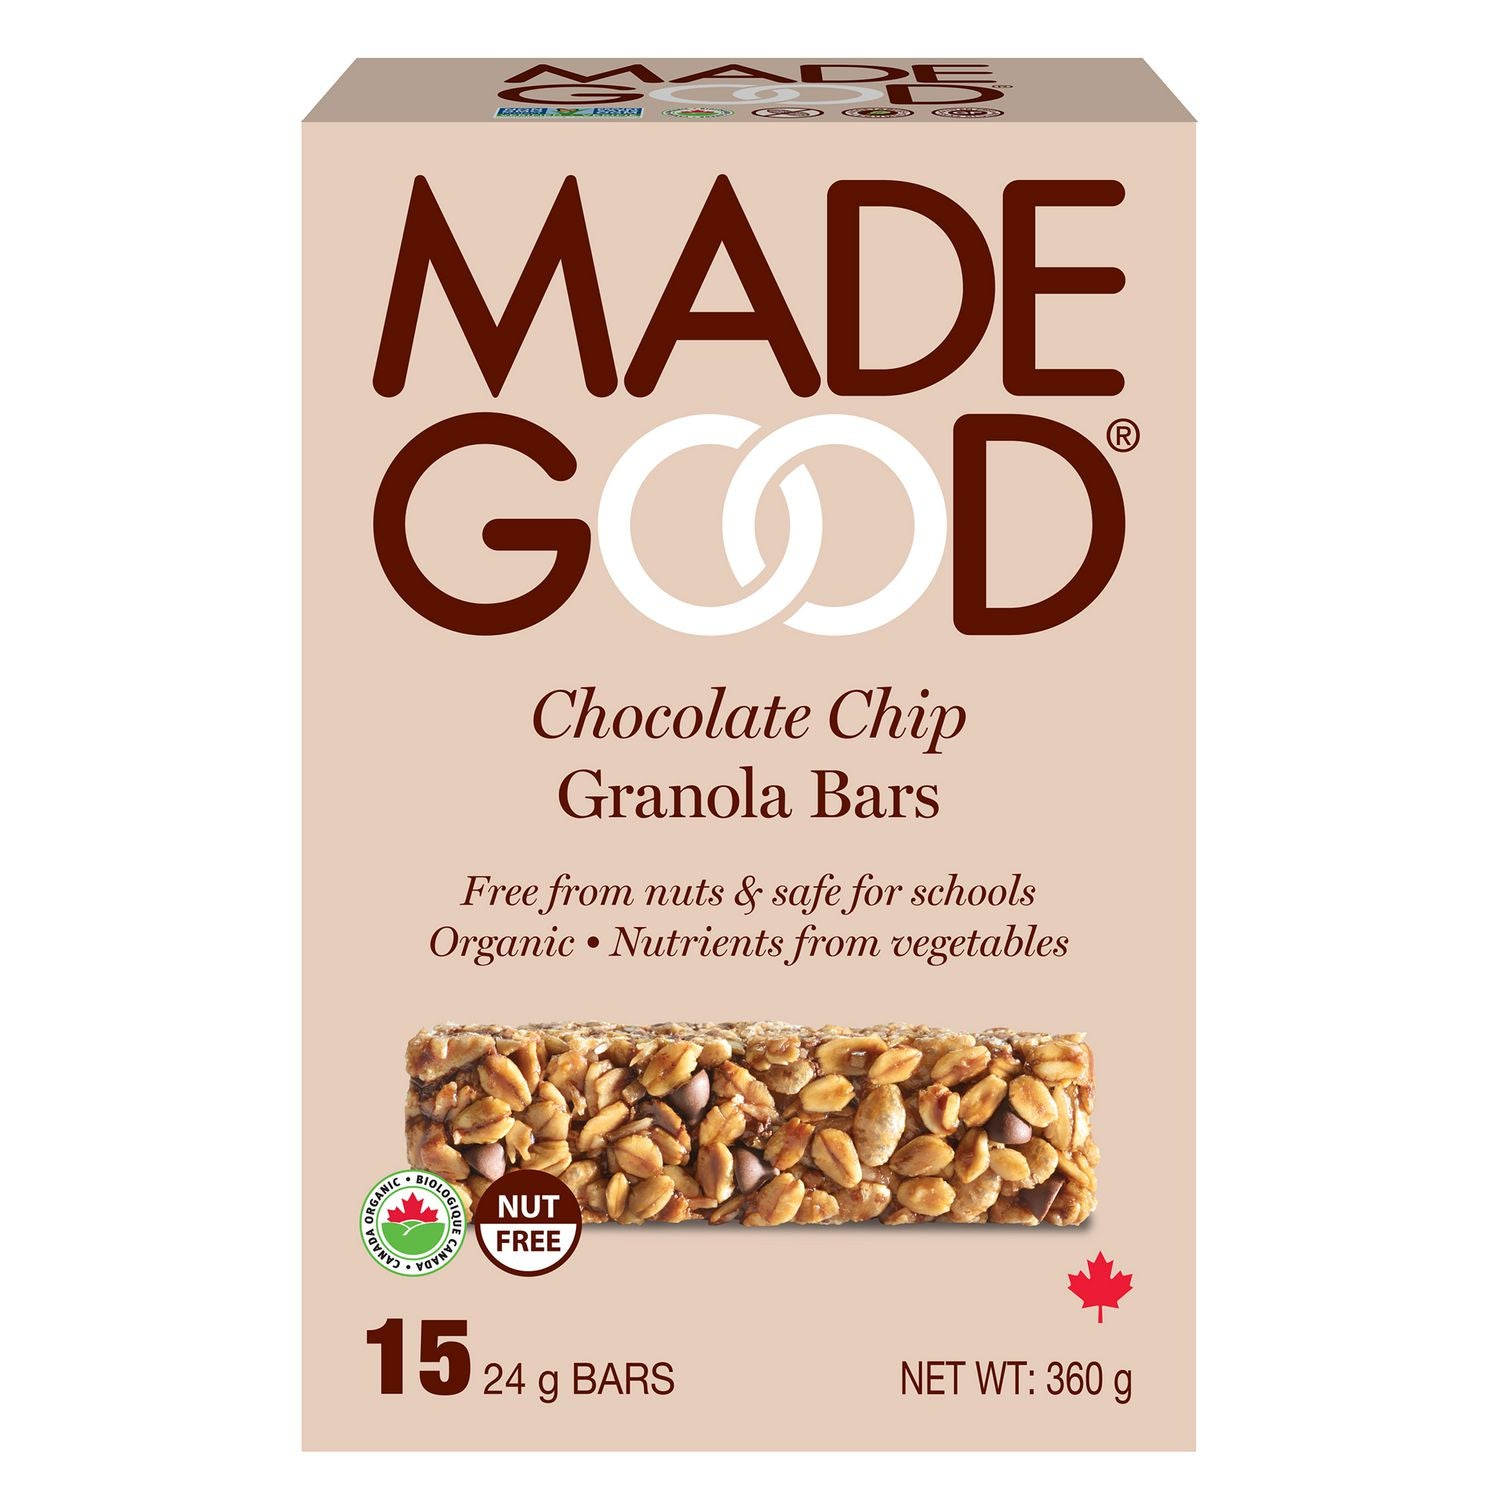 Made Good - Chocolate Chip Granola Bars, 15 x 24g